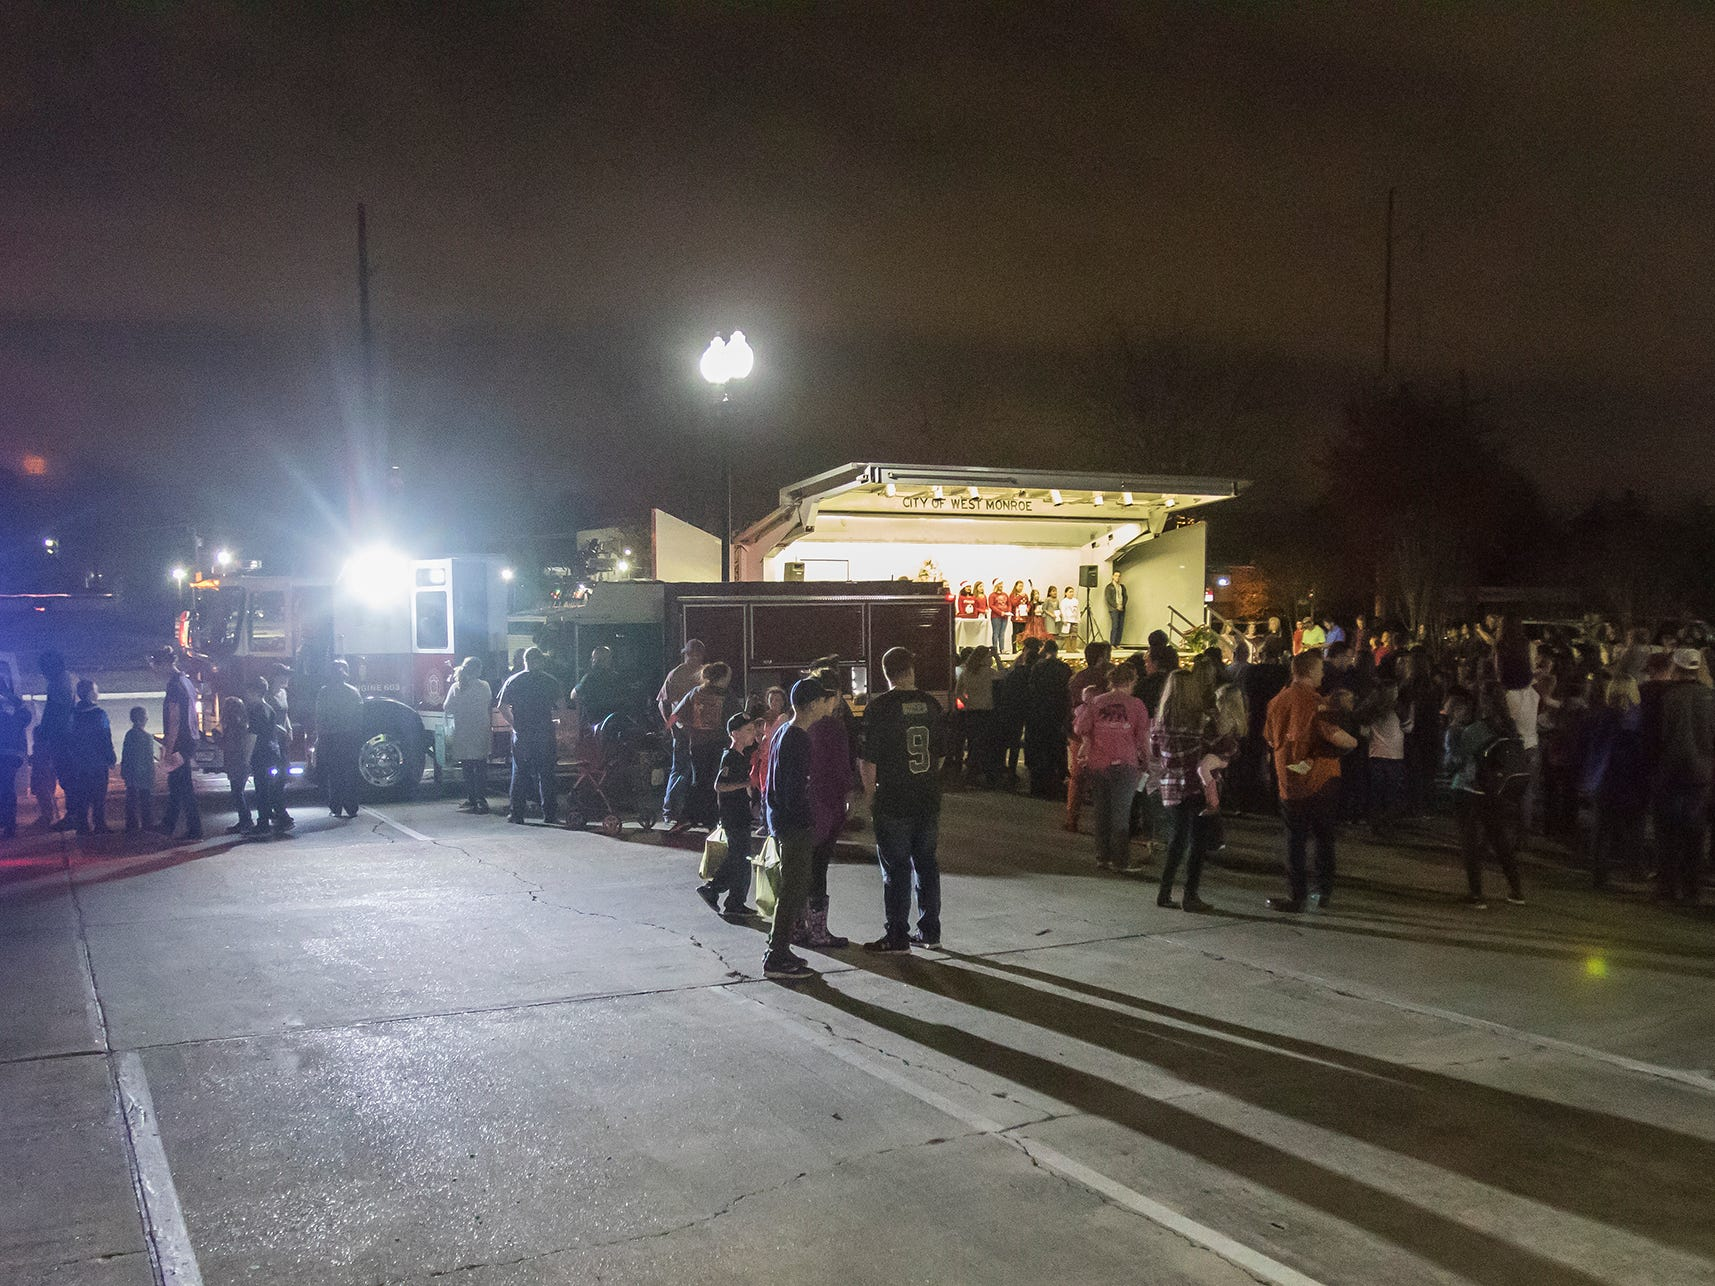 West Monroe held its first annual Christmas tree lighting at City Hall in West Monroe, La. on Nov. 29. The event featured trees decorated by the city's elementary schools.